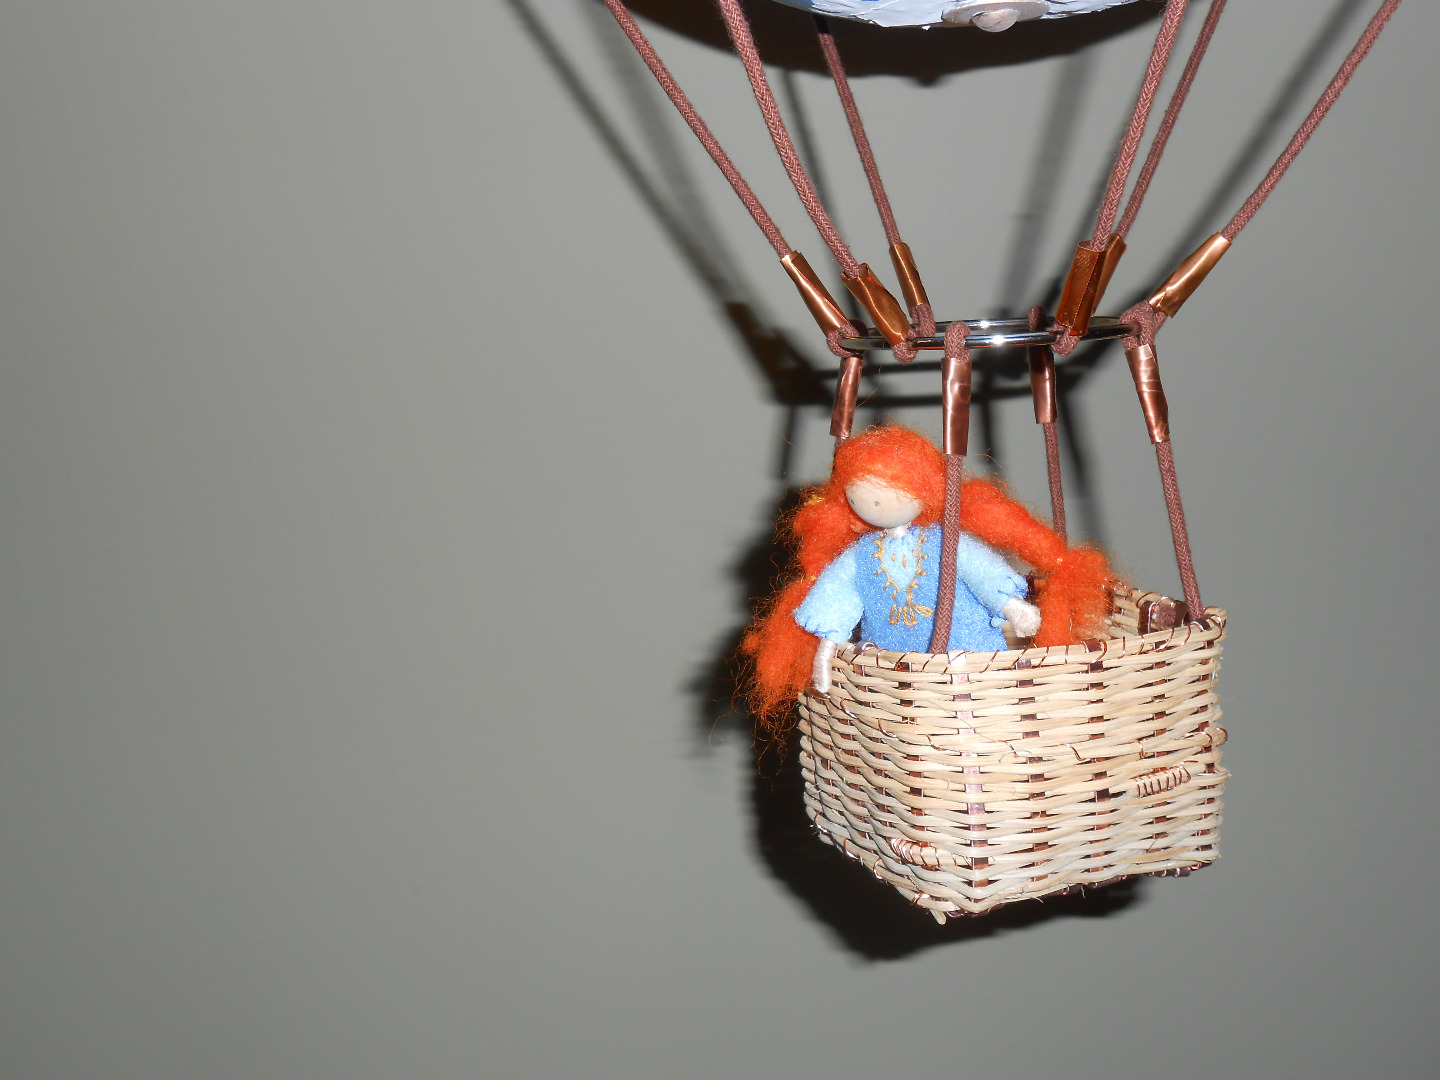 Steampunk Hot Air Balloon From a Globe: 5 Steps (with Pictures)